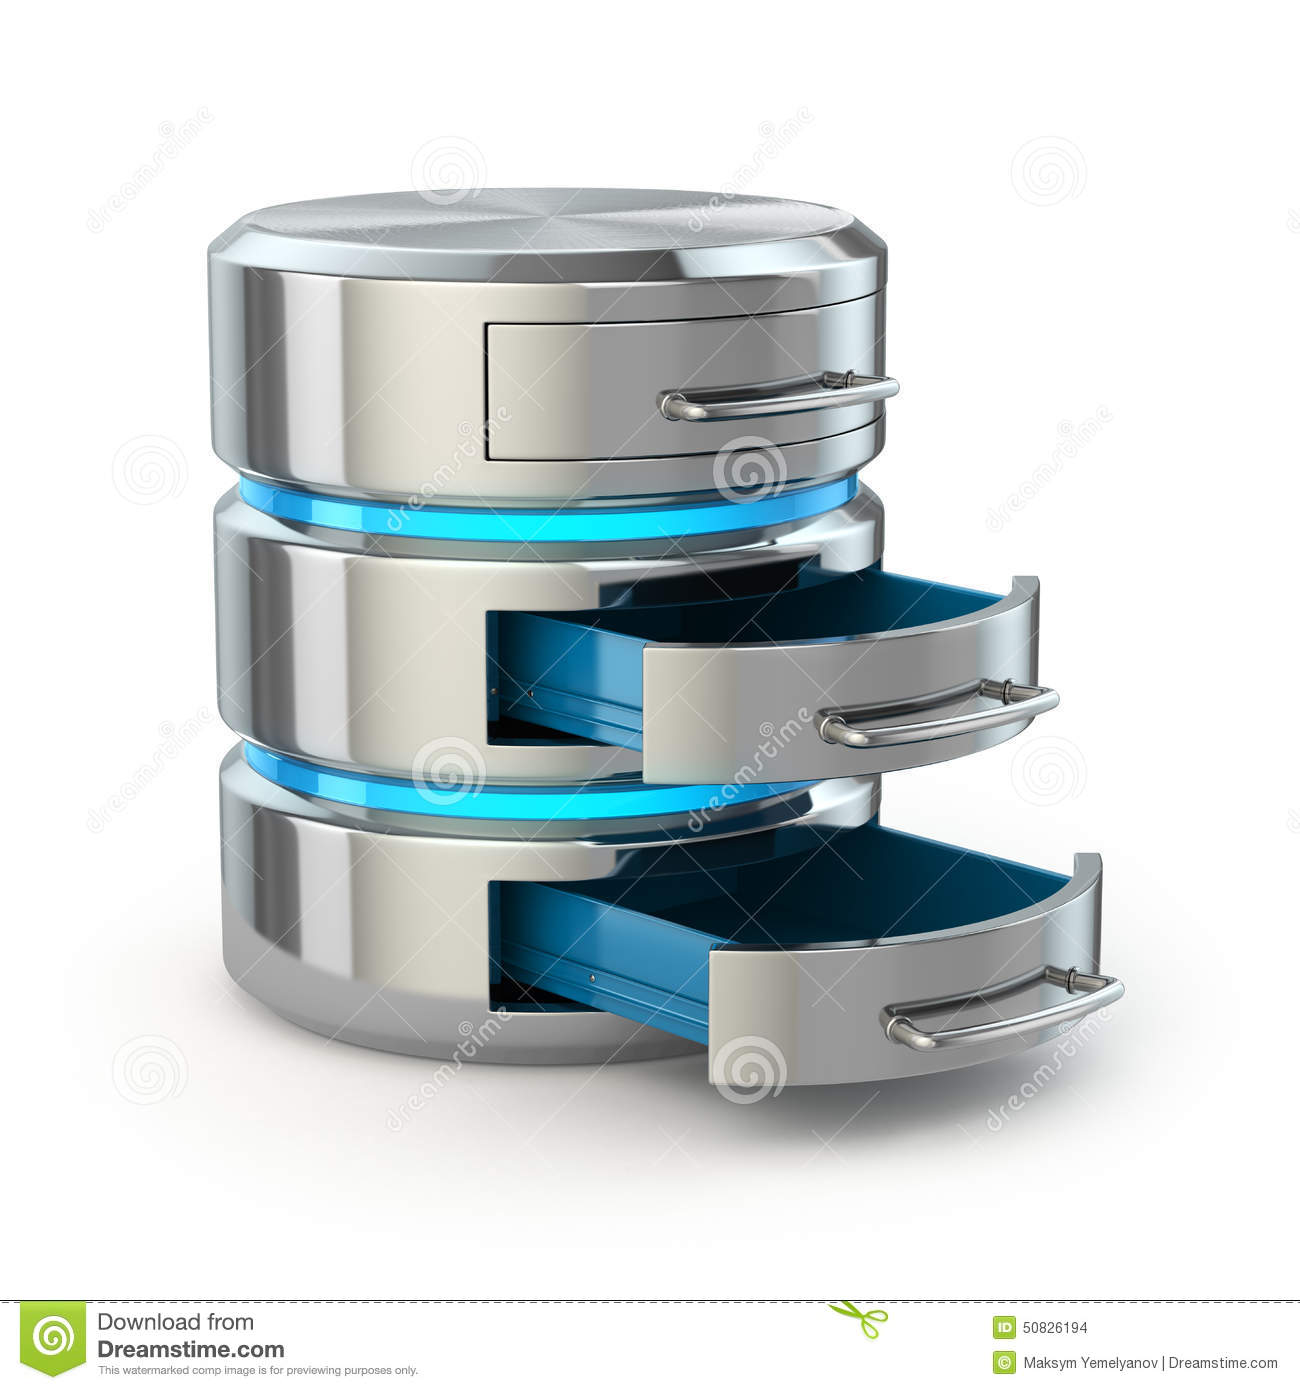 How To Disable Windows Update In Windows 10 likewise Stock Illustration Hard Disk Drive Data Storage Database Icon Symbol White Background Image41240983 moreover 2012 Contest Winners in addition Vivo V5s Pc Suite And Usb Driver together with Afraid Part 11 Raid 5 Raid 6 And Raid 50. on backup for computer